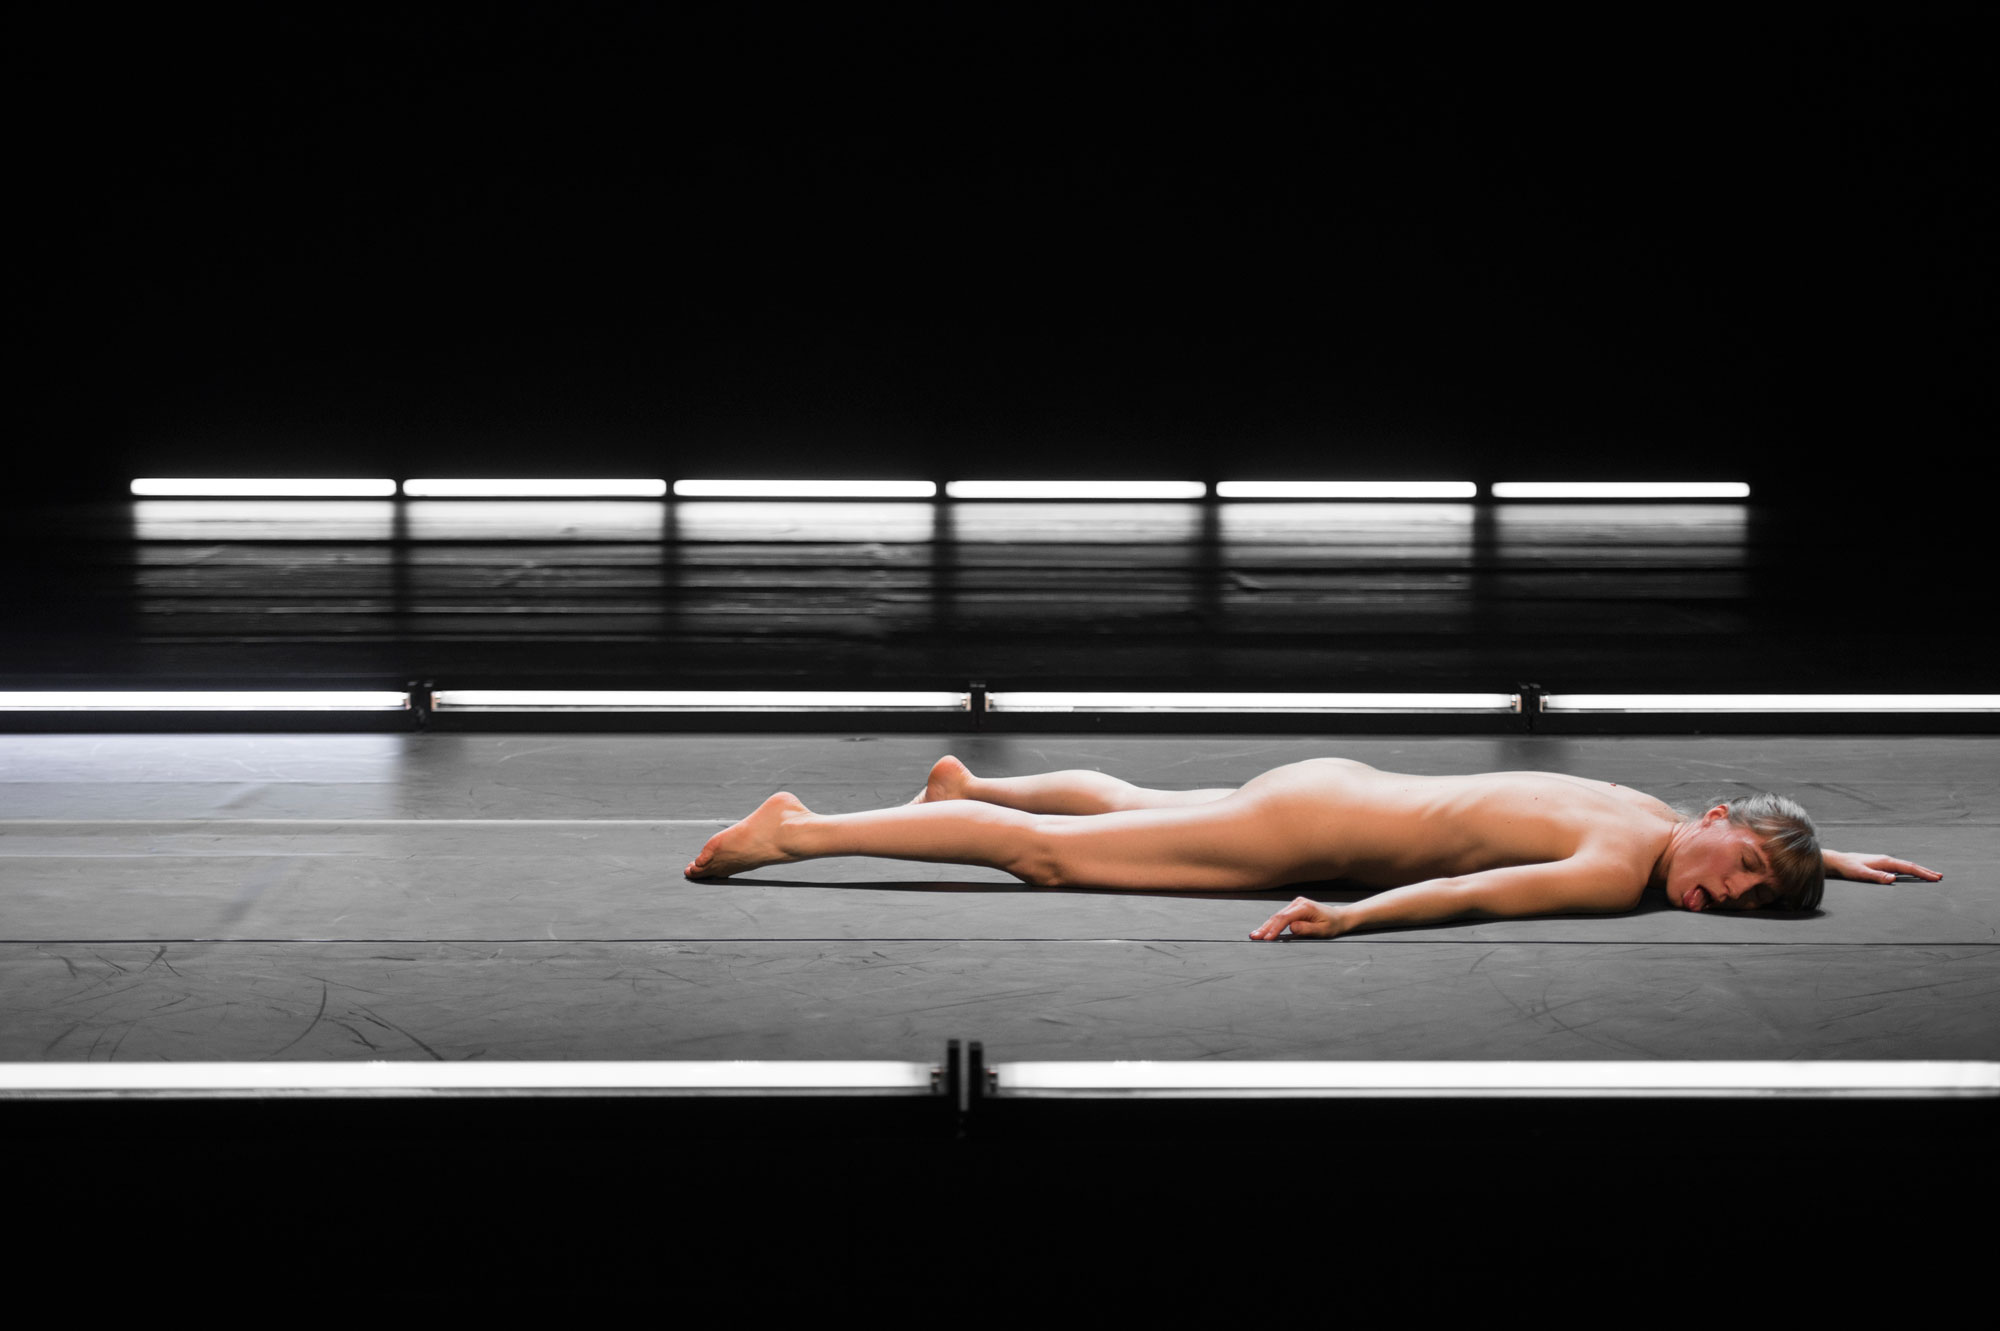 Photo of Mette Ingvartsen lying on stage in 21 Pornographies